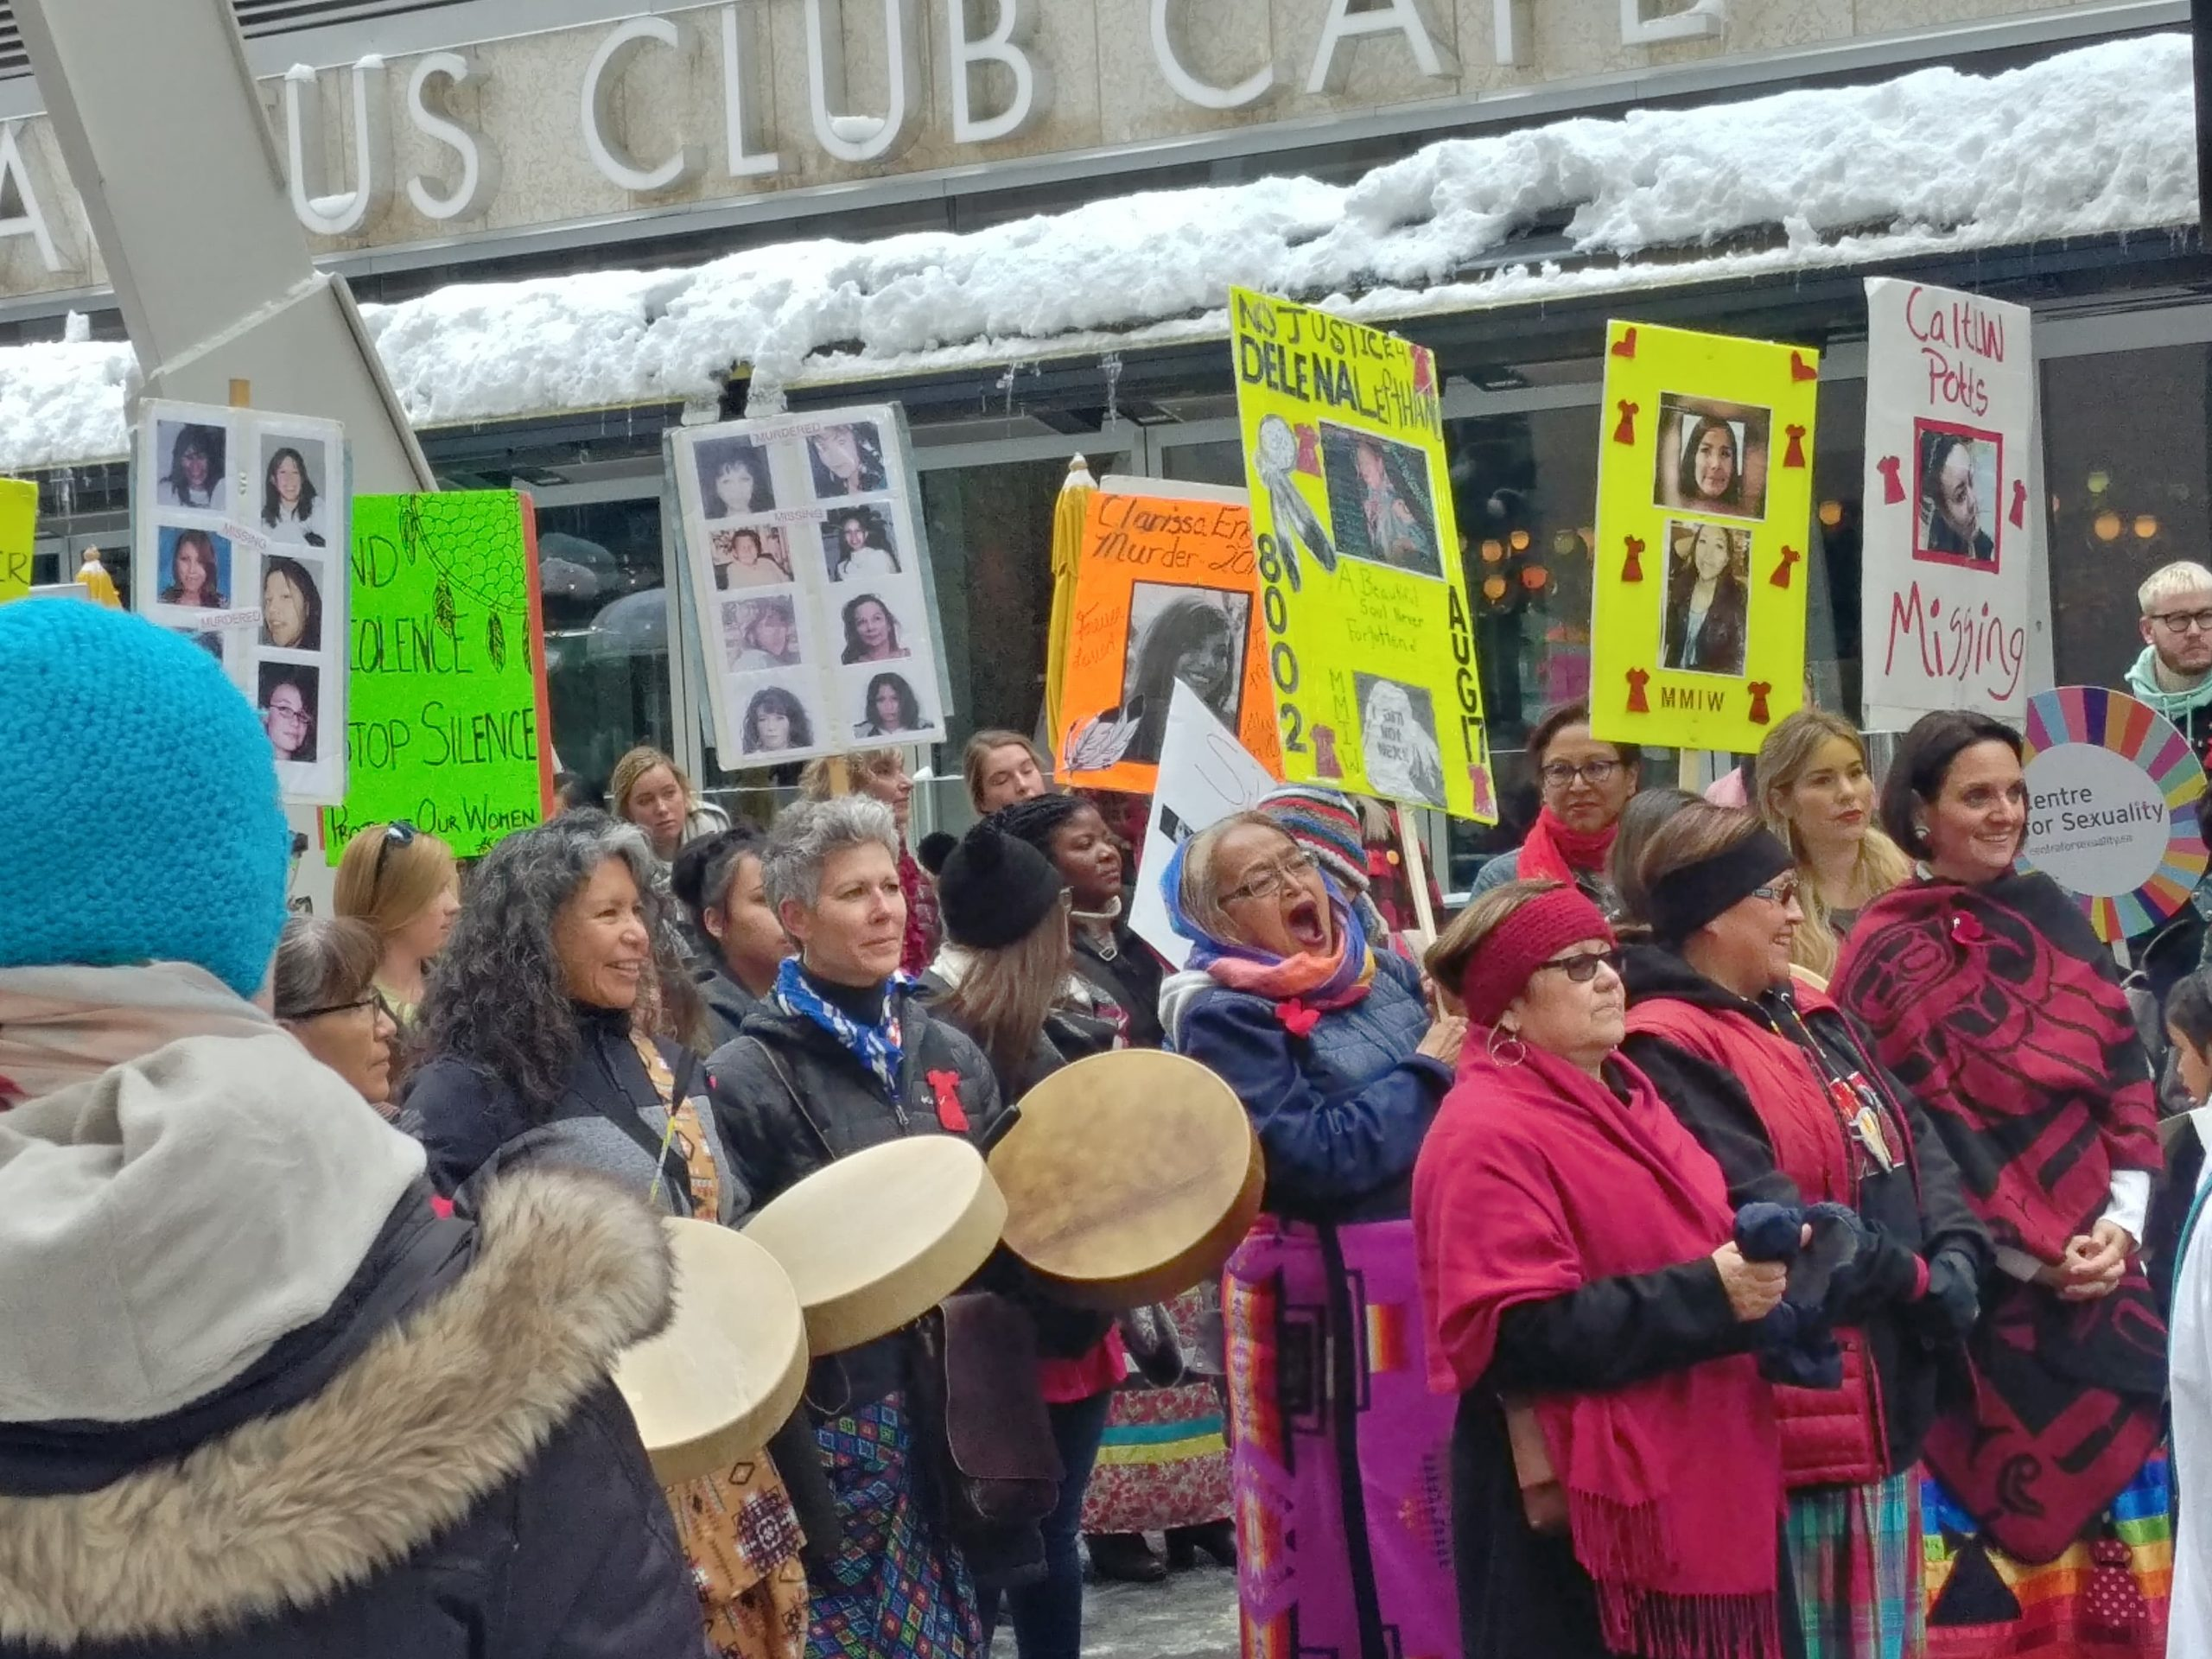 First Nations members march for injustice